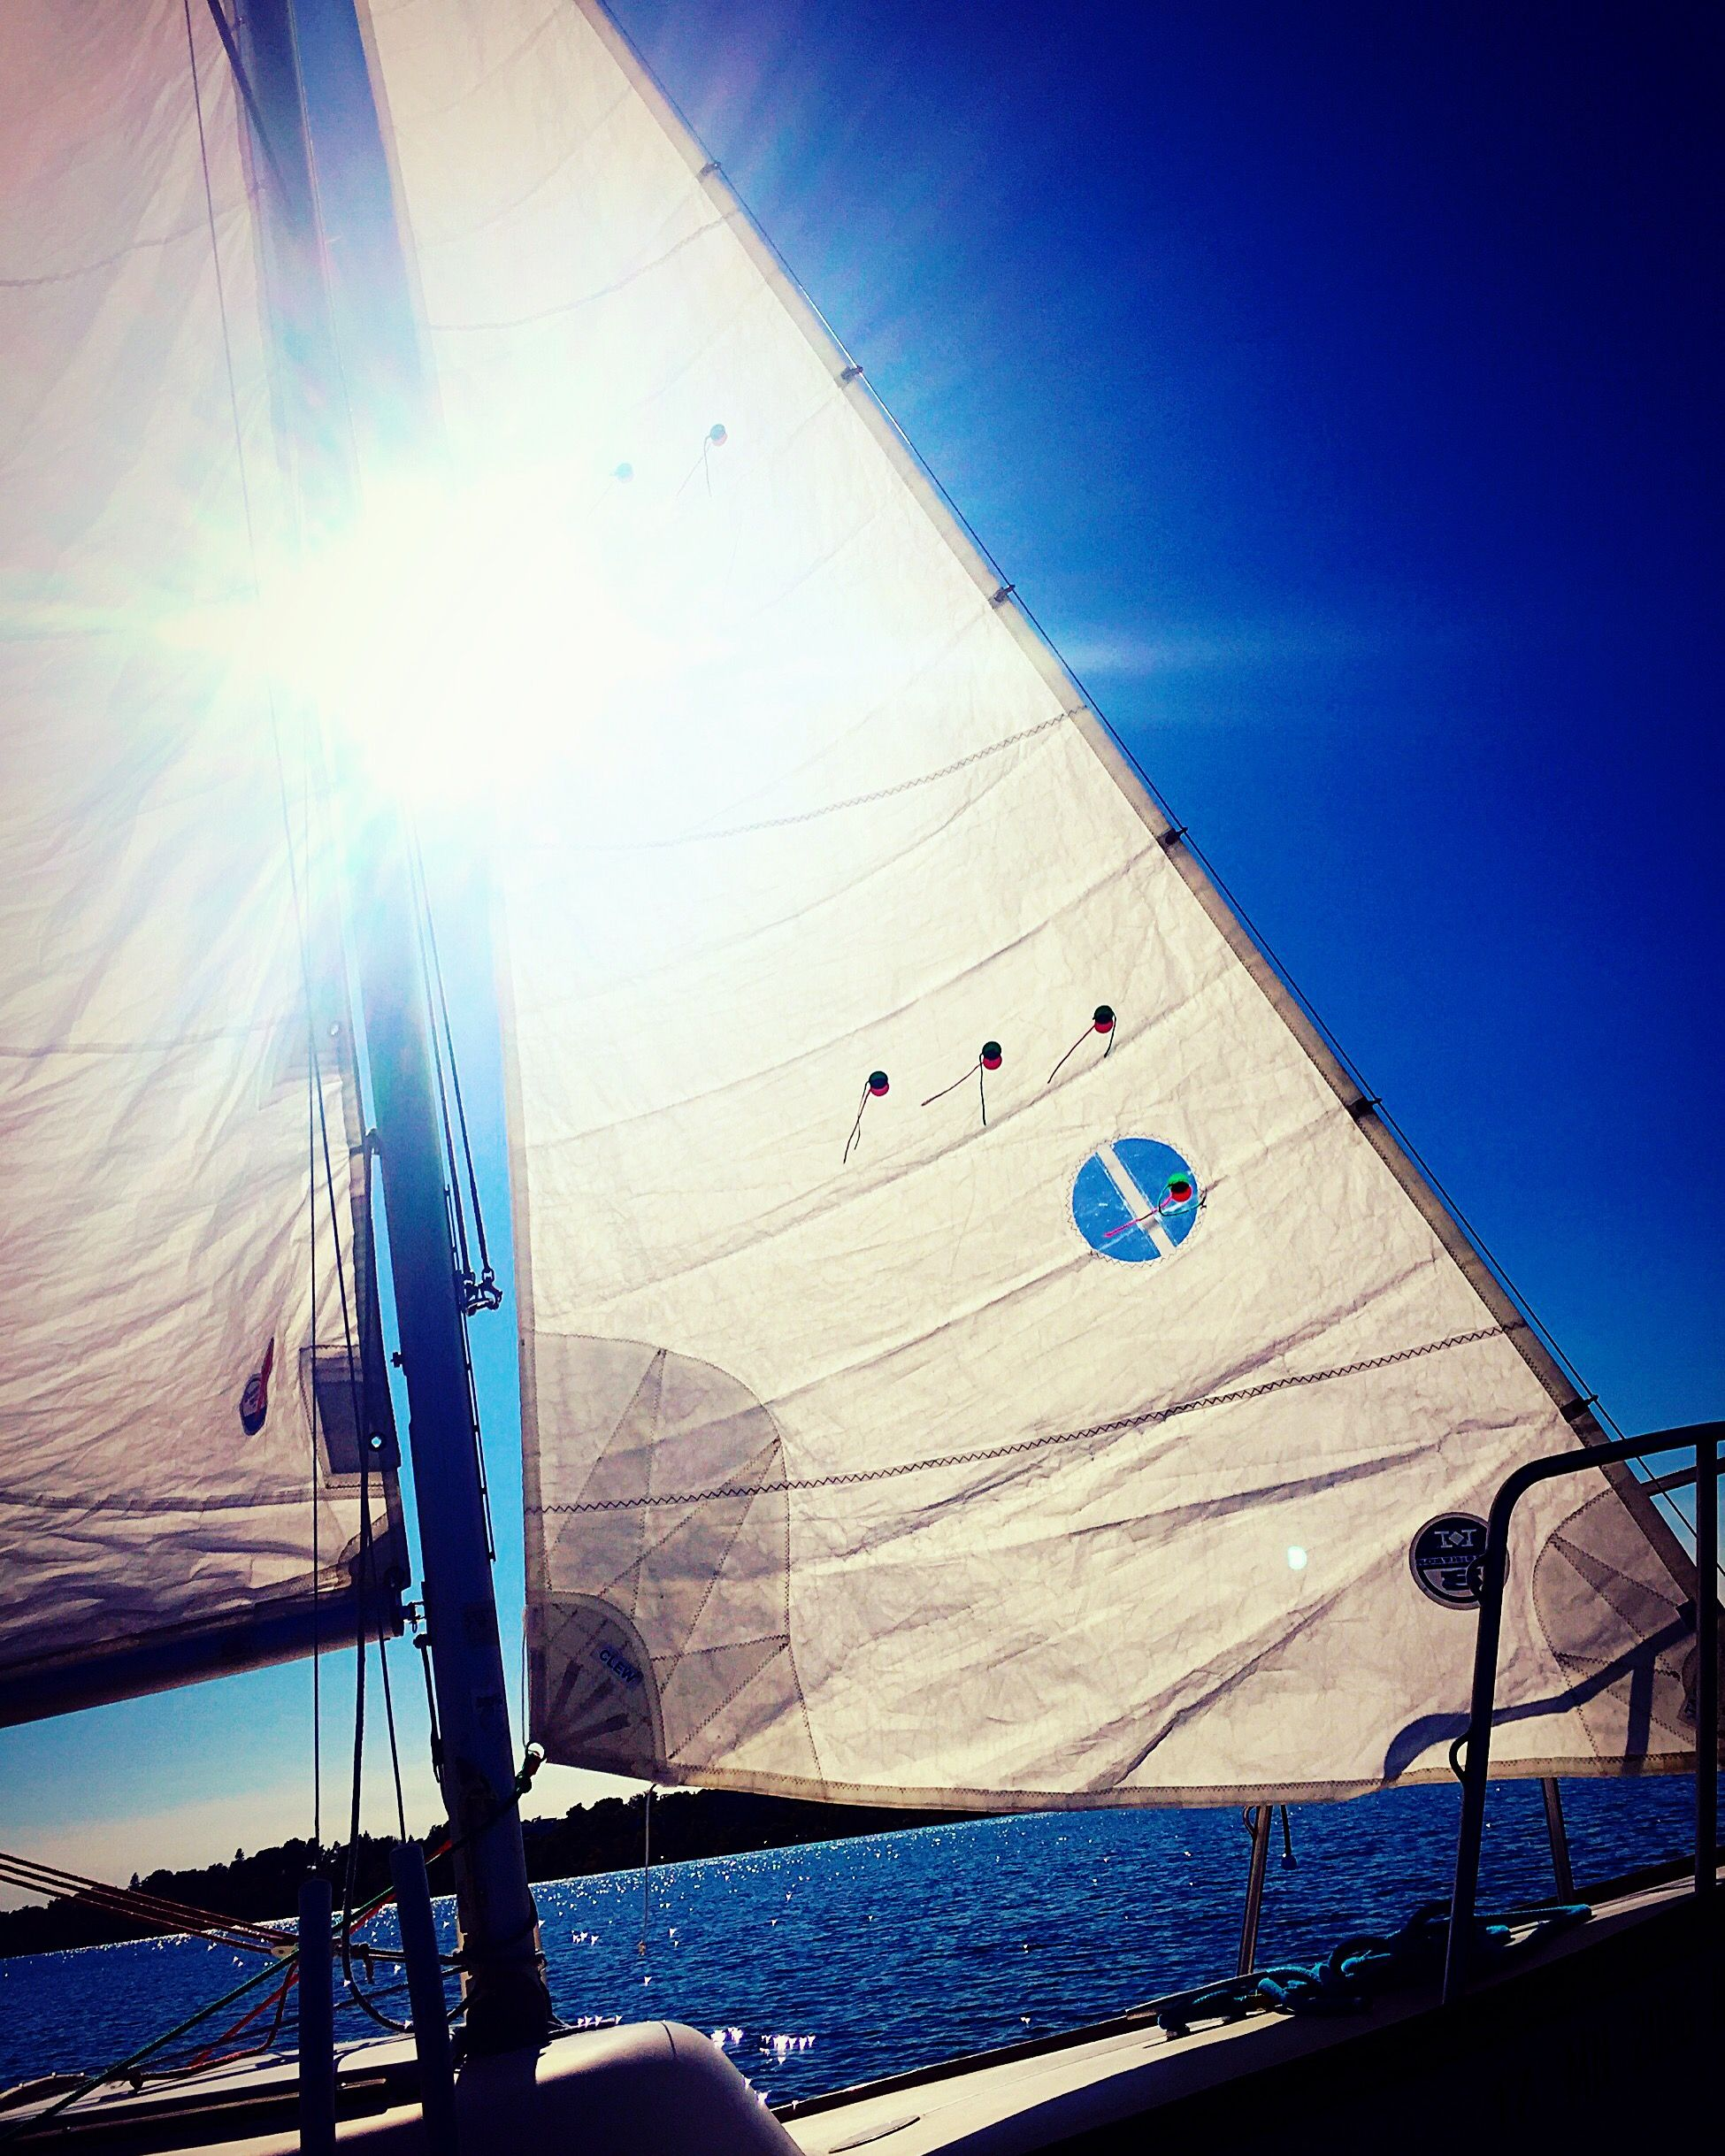 It was a great day for a sail... #mpls #lakecalhoun